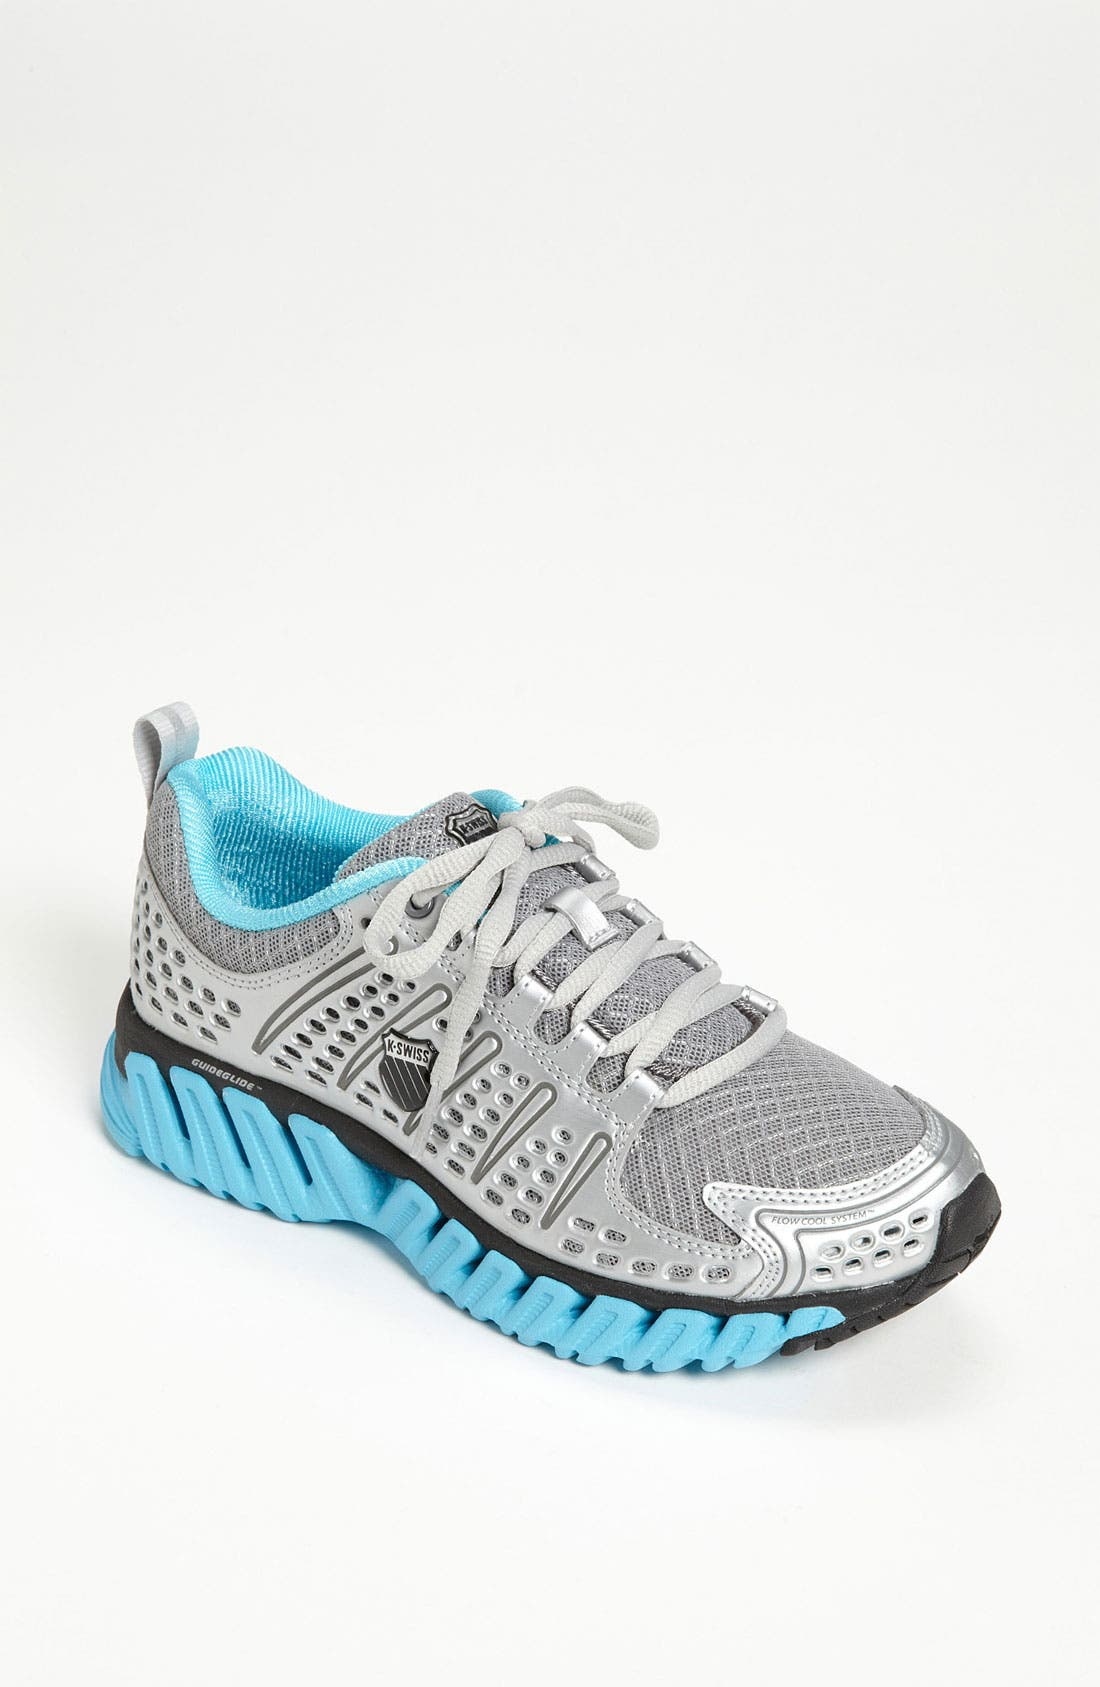 Alternate Image 1 Selected - K-Swiss 'Blade Max Endure' Training Shoe (Women)